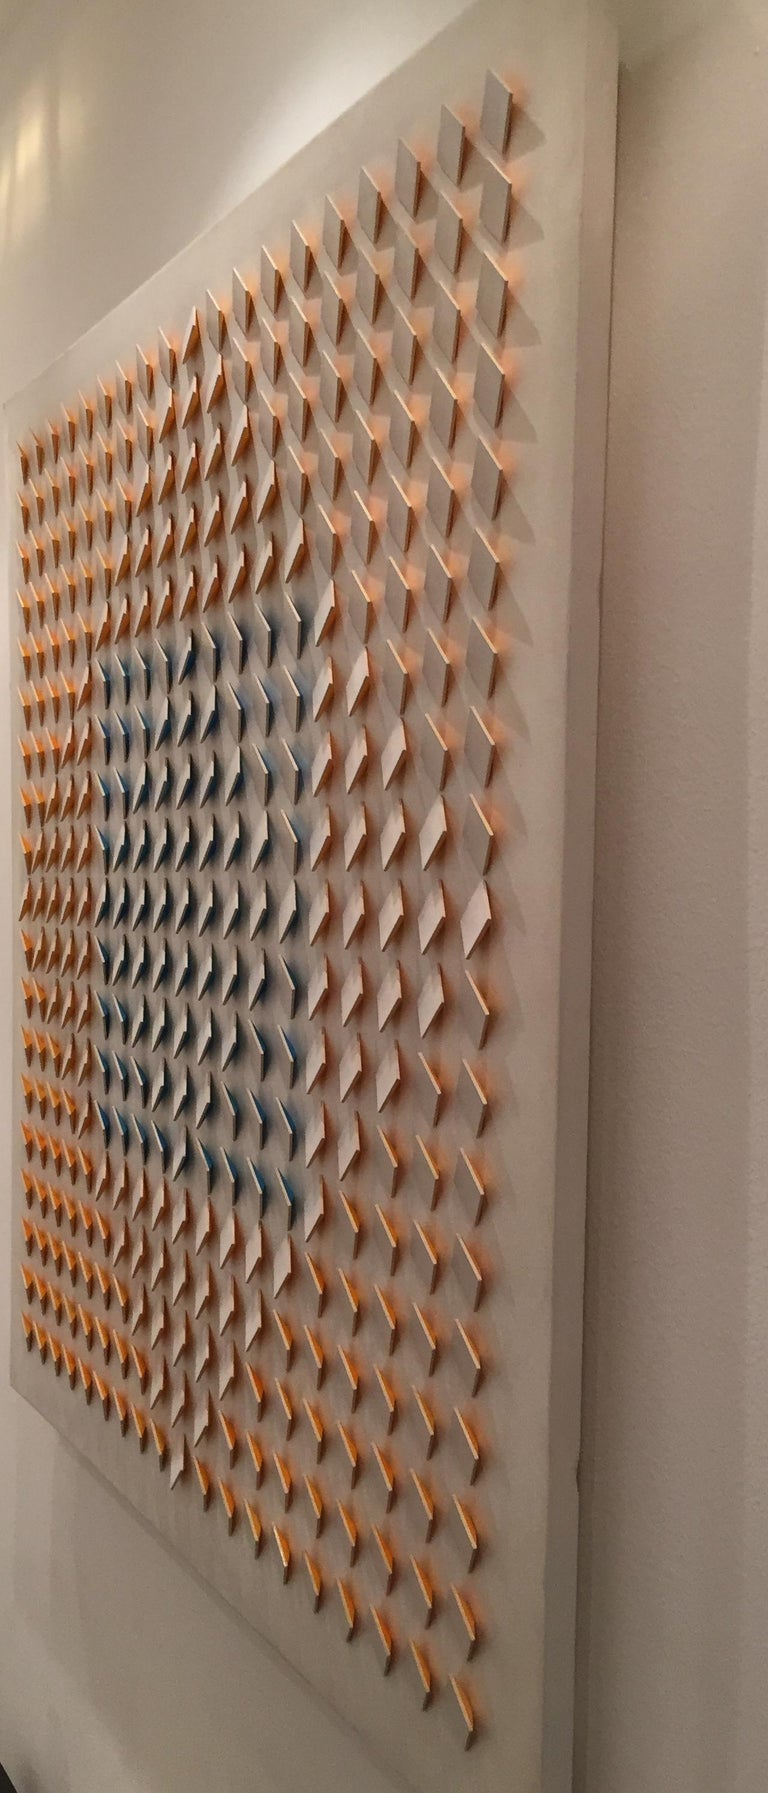 Atmosphère Chromoplastique N.246 - Acrylic on Wood by L. Tomasello -  - Op Art Painting by Luis Tomasello